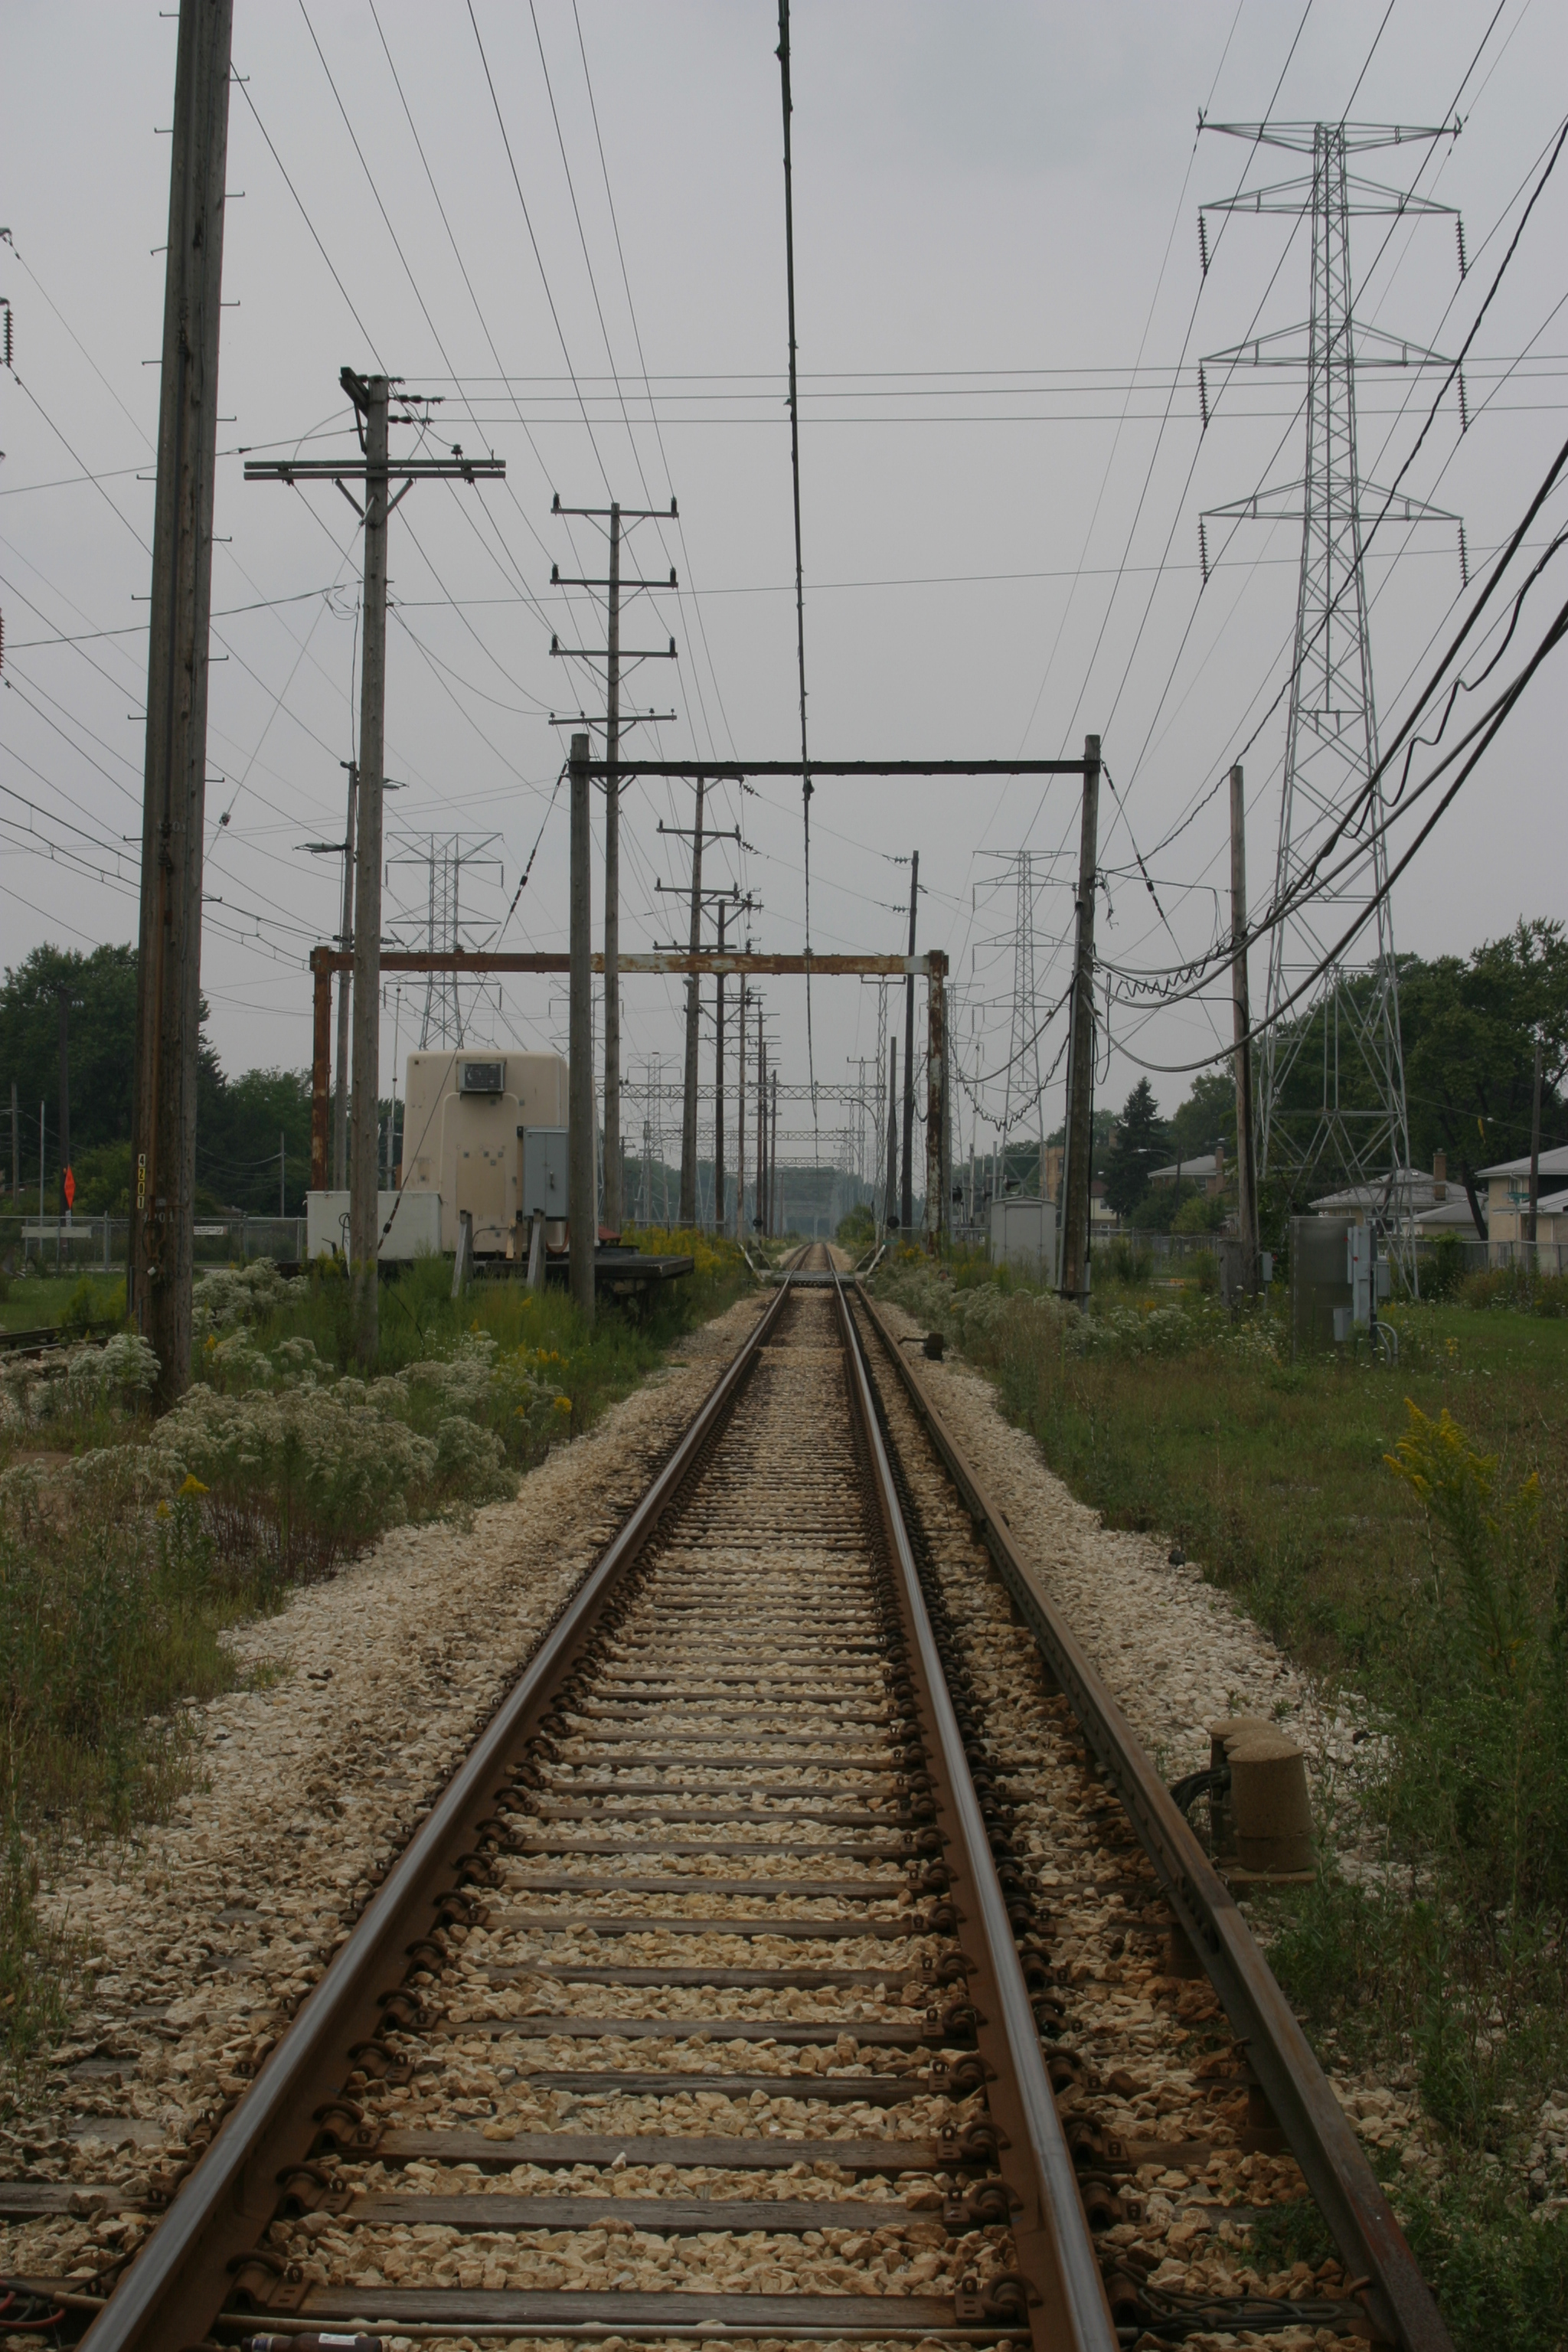 Electric Power Rail : Overhead lines